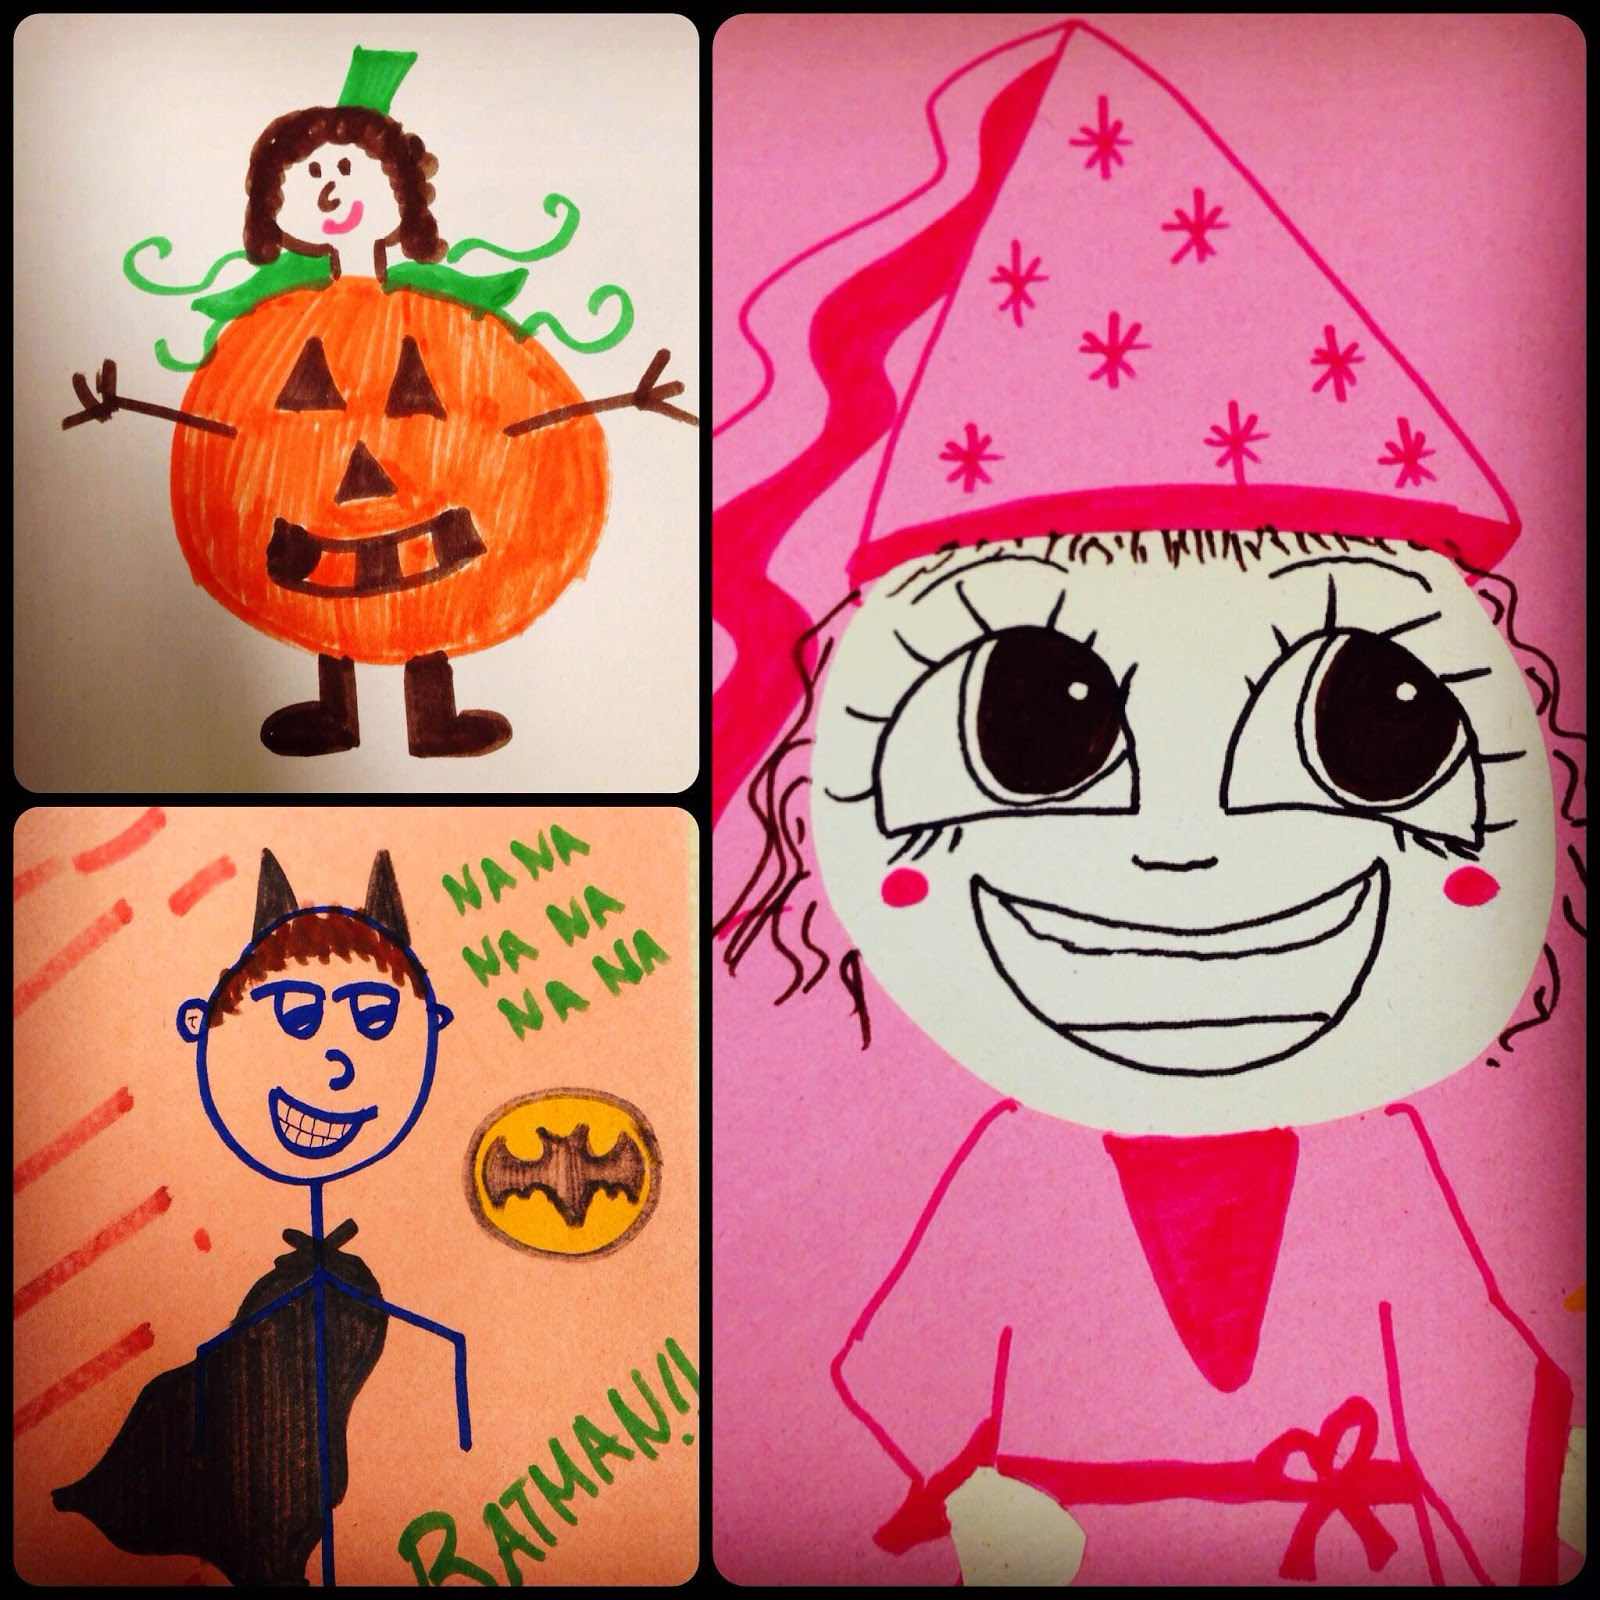 University students: their fave childhood costumes for Halloween